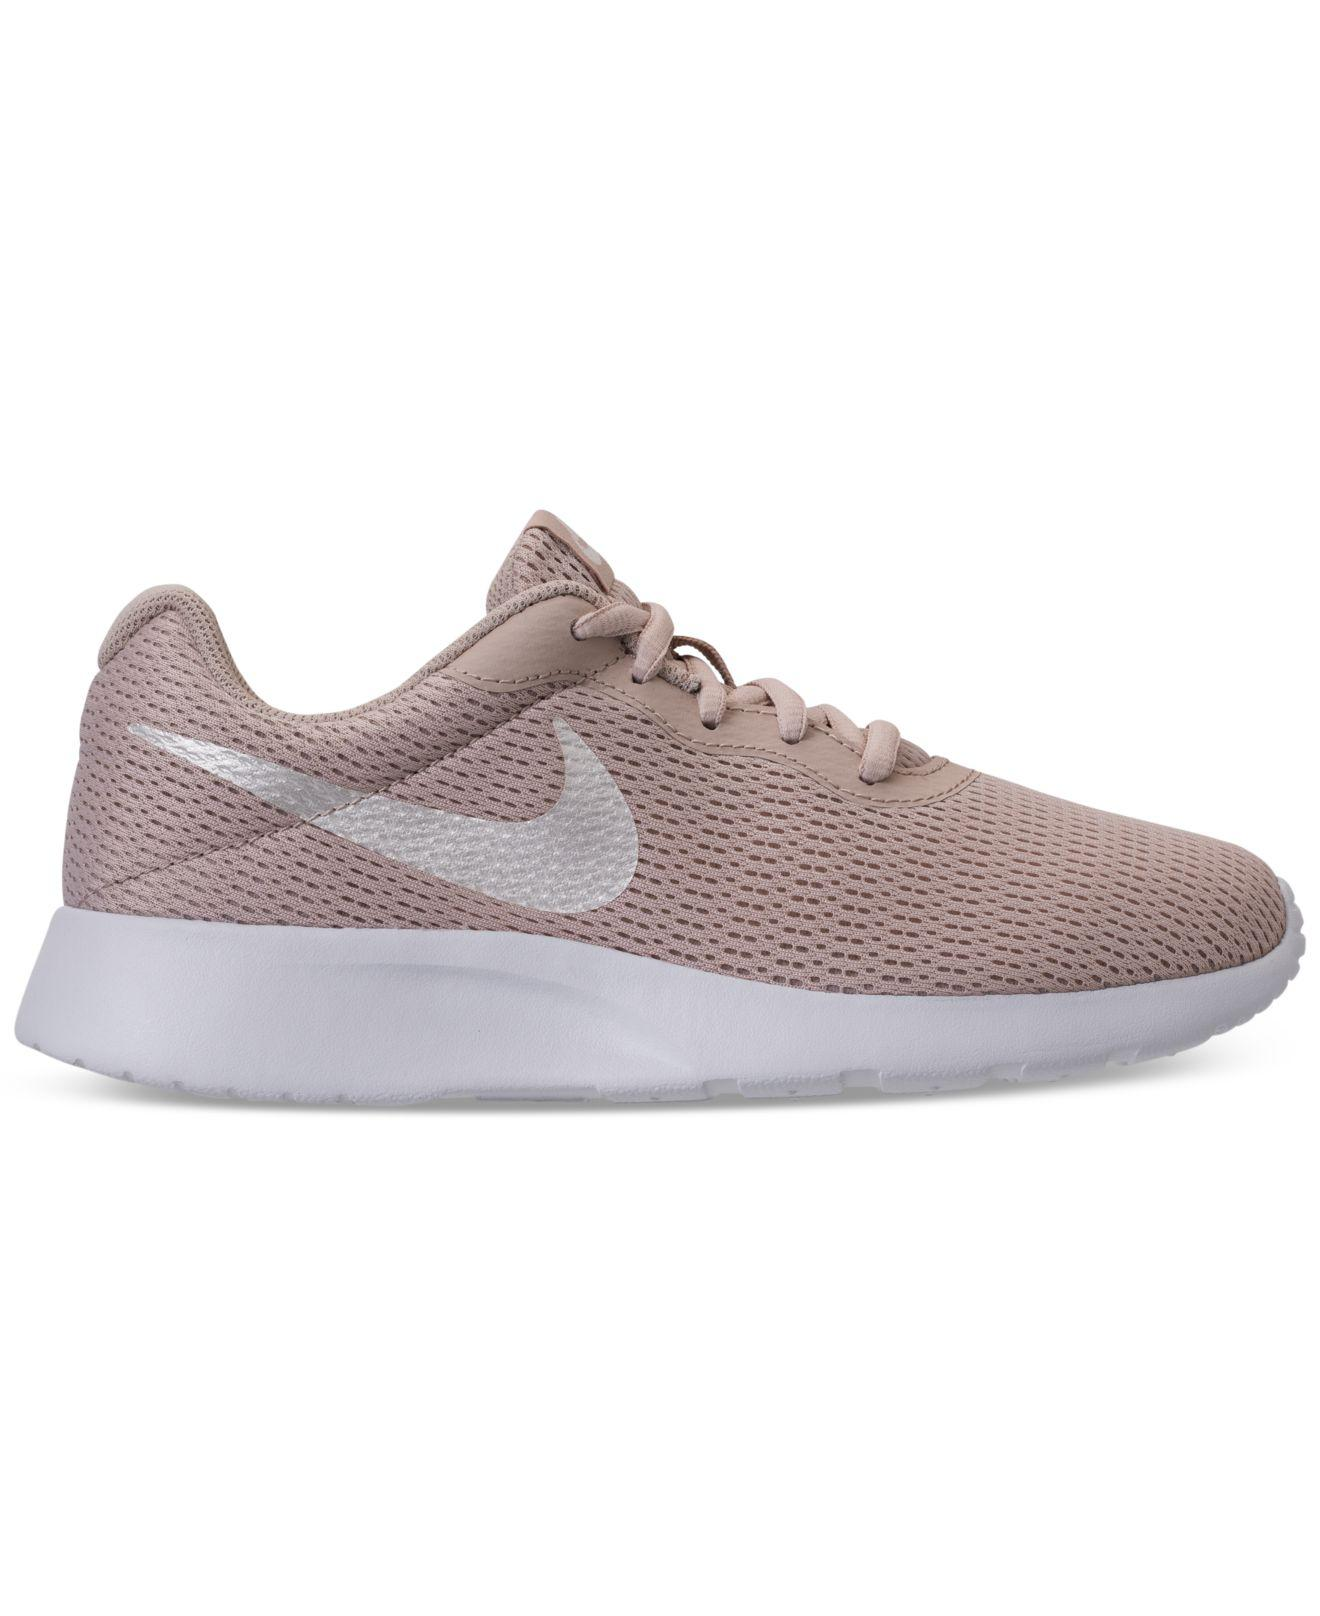 premium selection 23236 2ba60 Lyst - Nike Tanjun Casual Sneakers From Finish Line - Save 9%